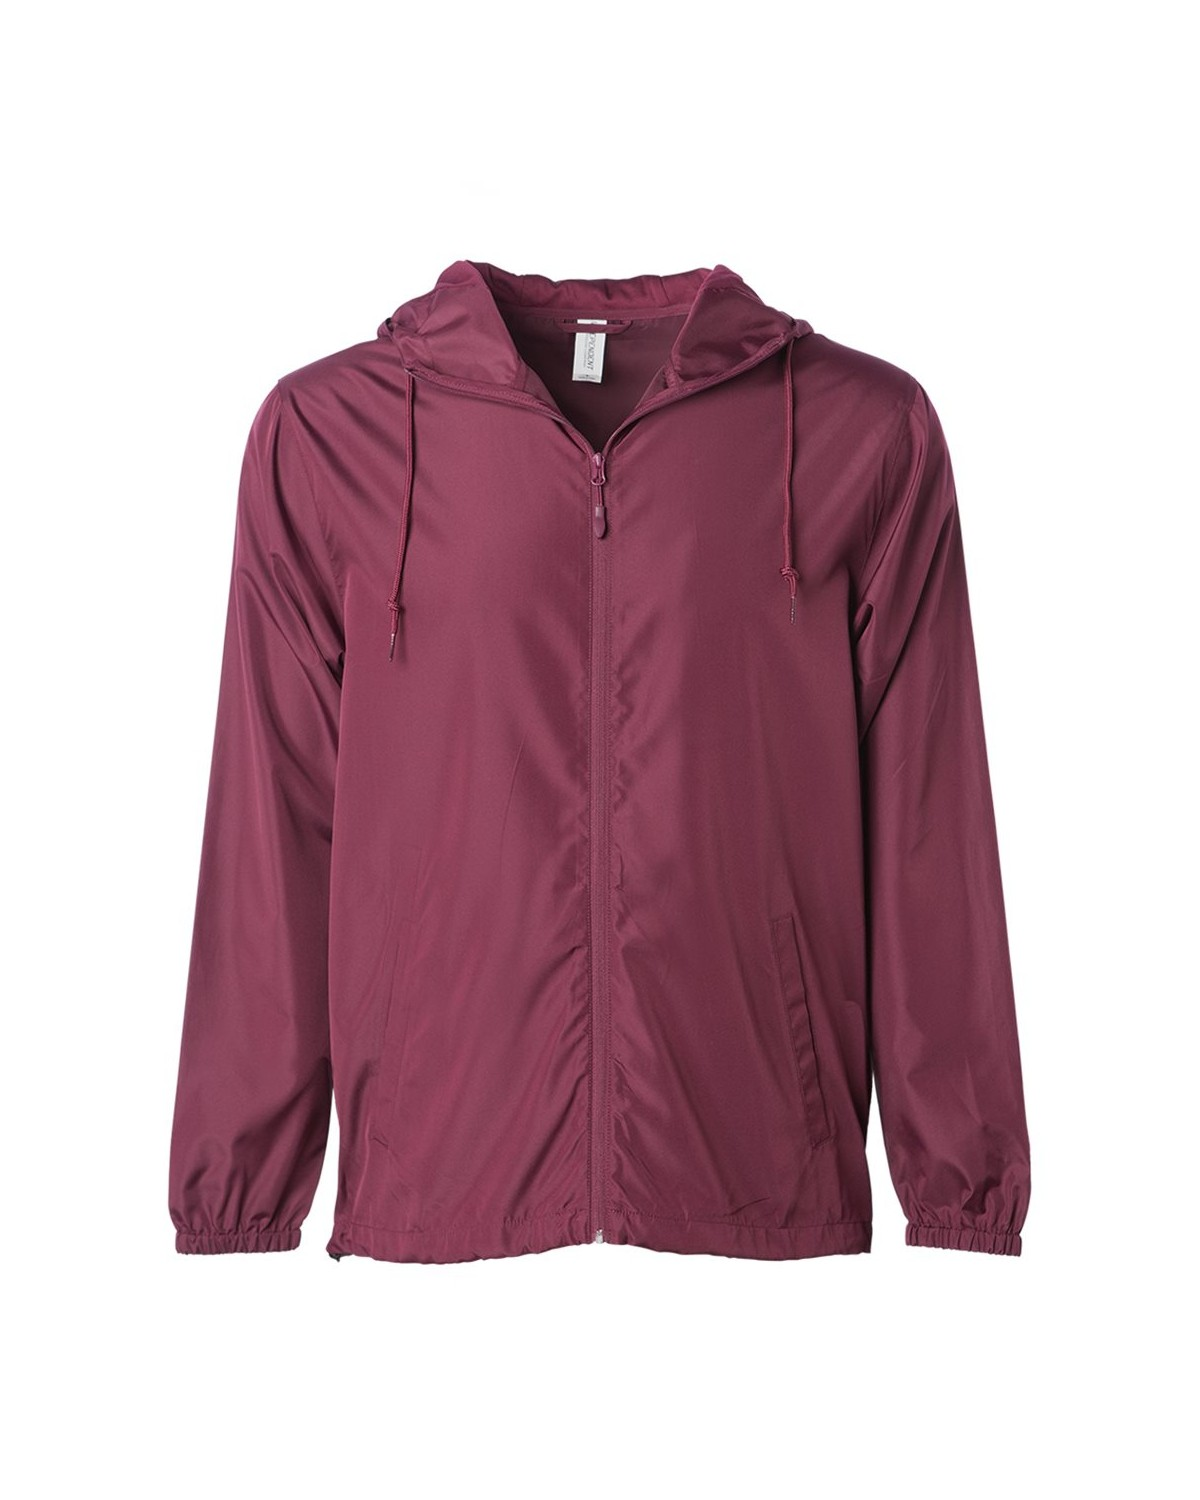 EXP54LWZ Independent Trading Company MAROON